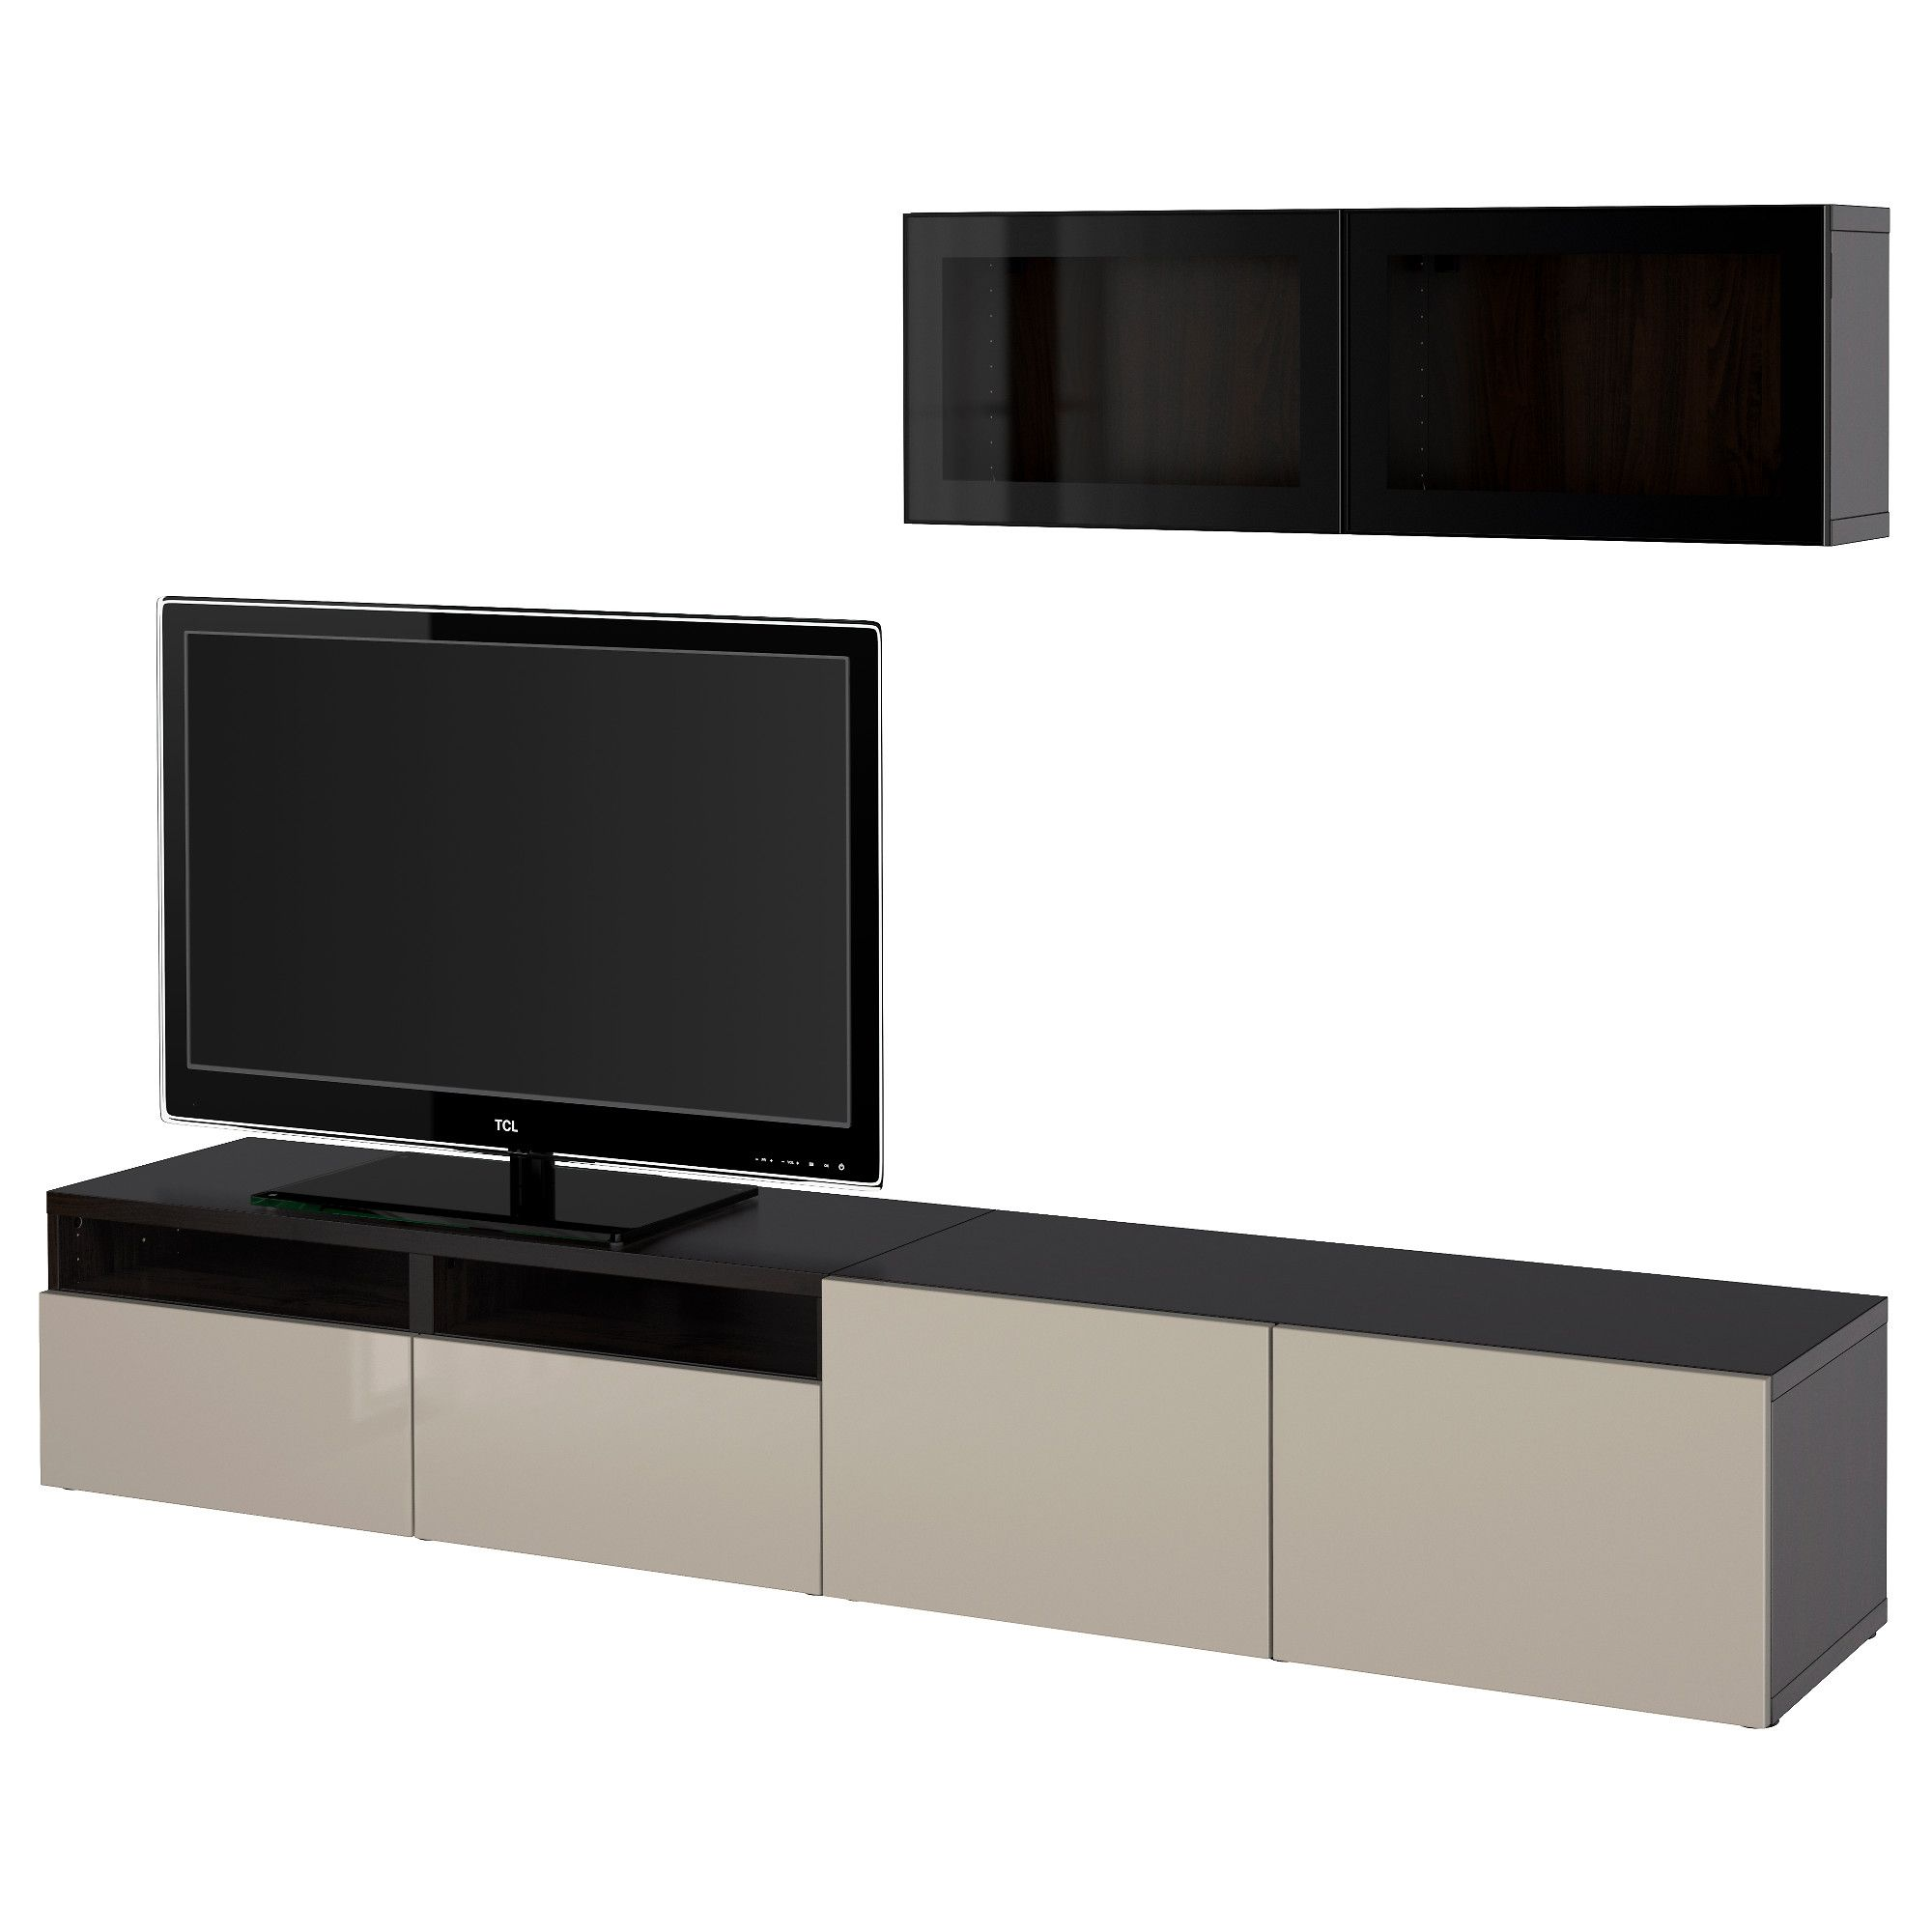 Wohnwand Murphy Pin By Ladendirekt On Tv Hifi Möbel Pinterest Ikea Tv Storage